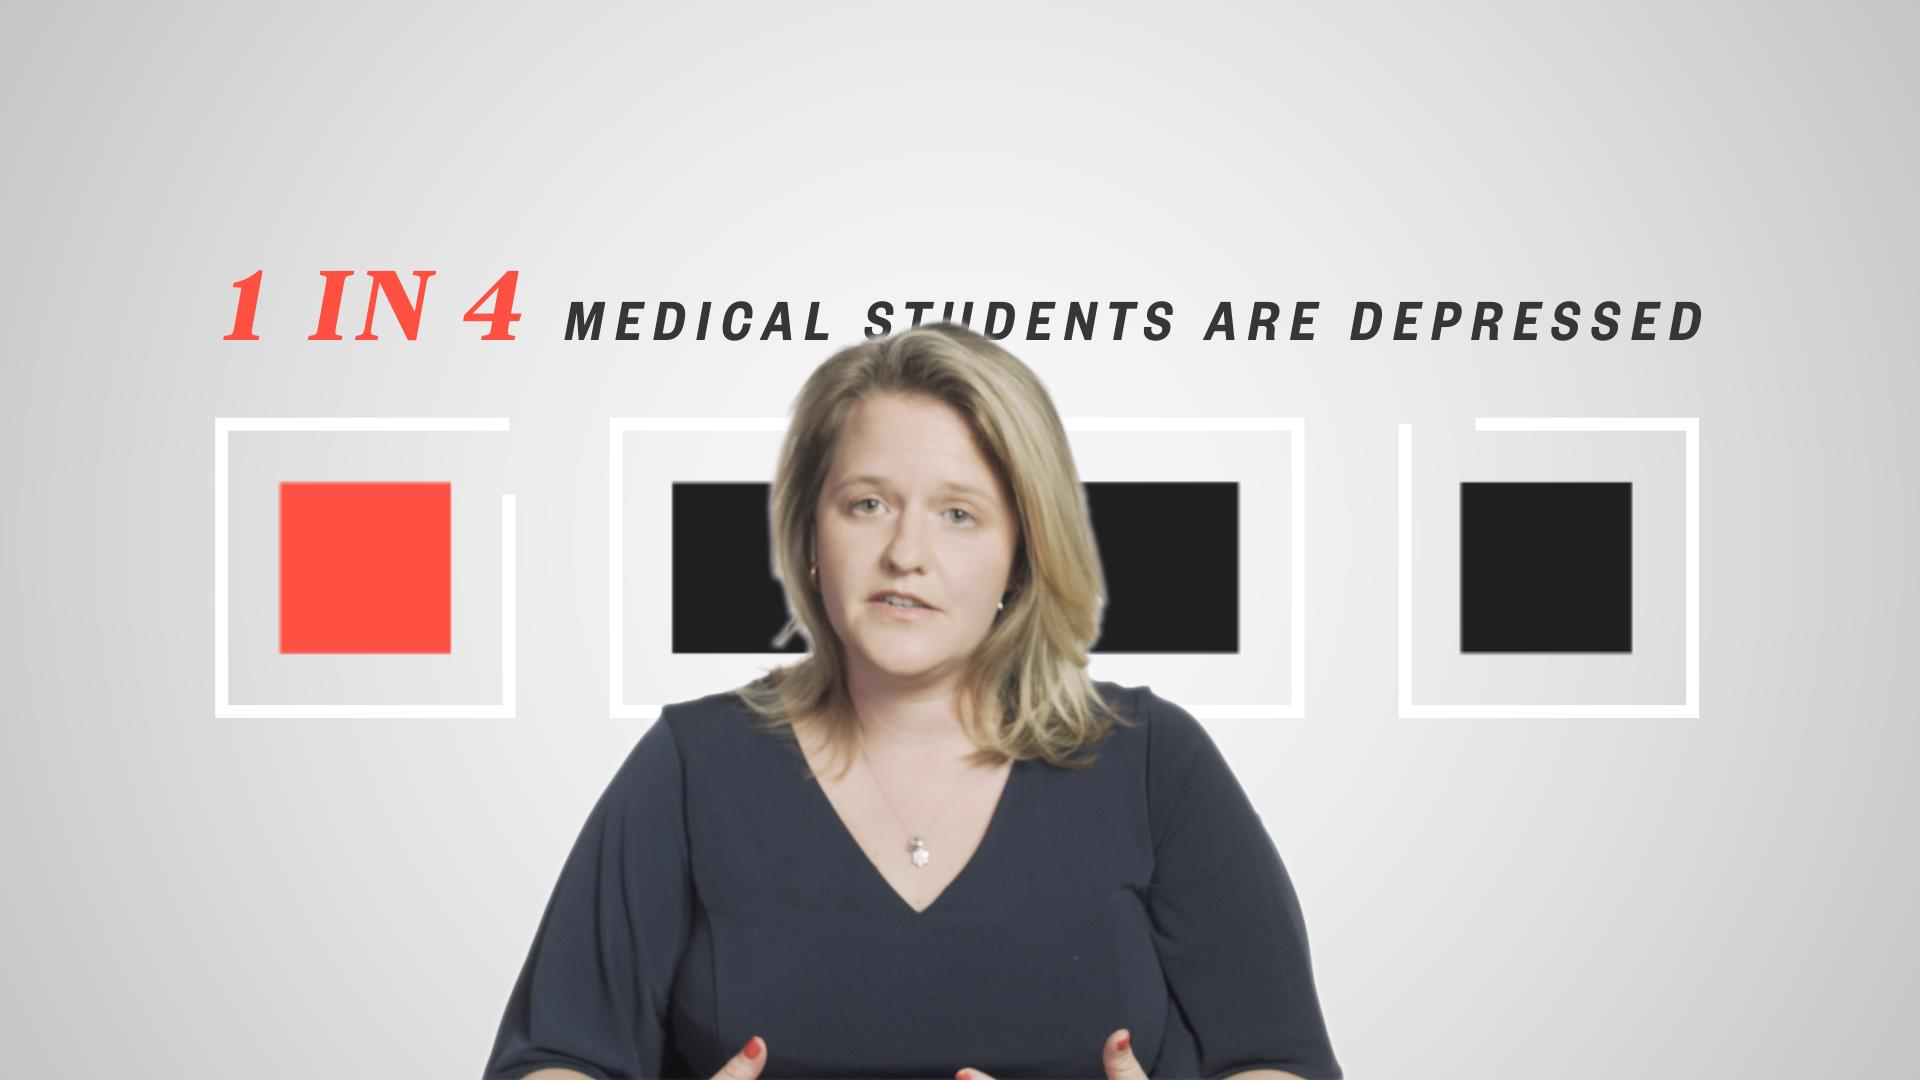 There's a mental health crisis among doctors